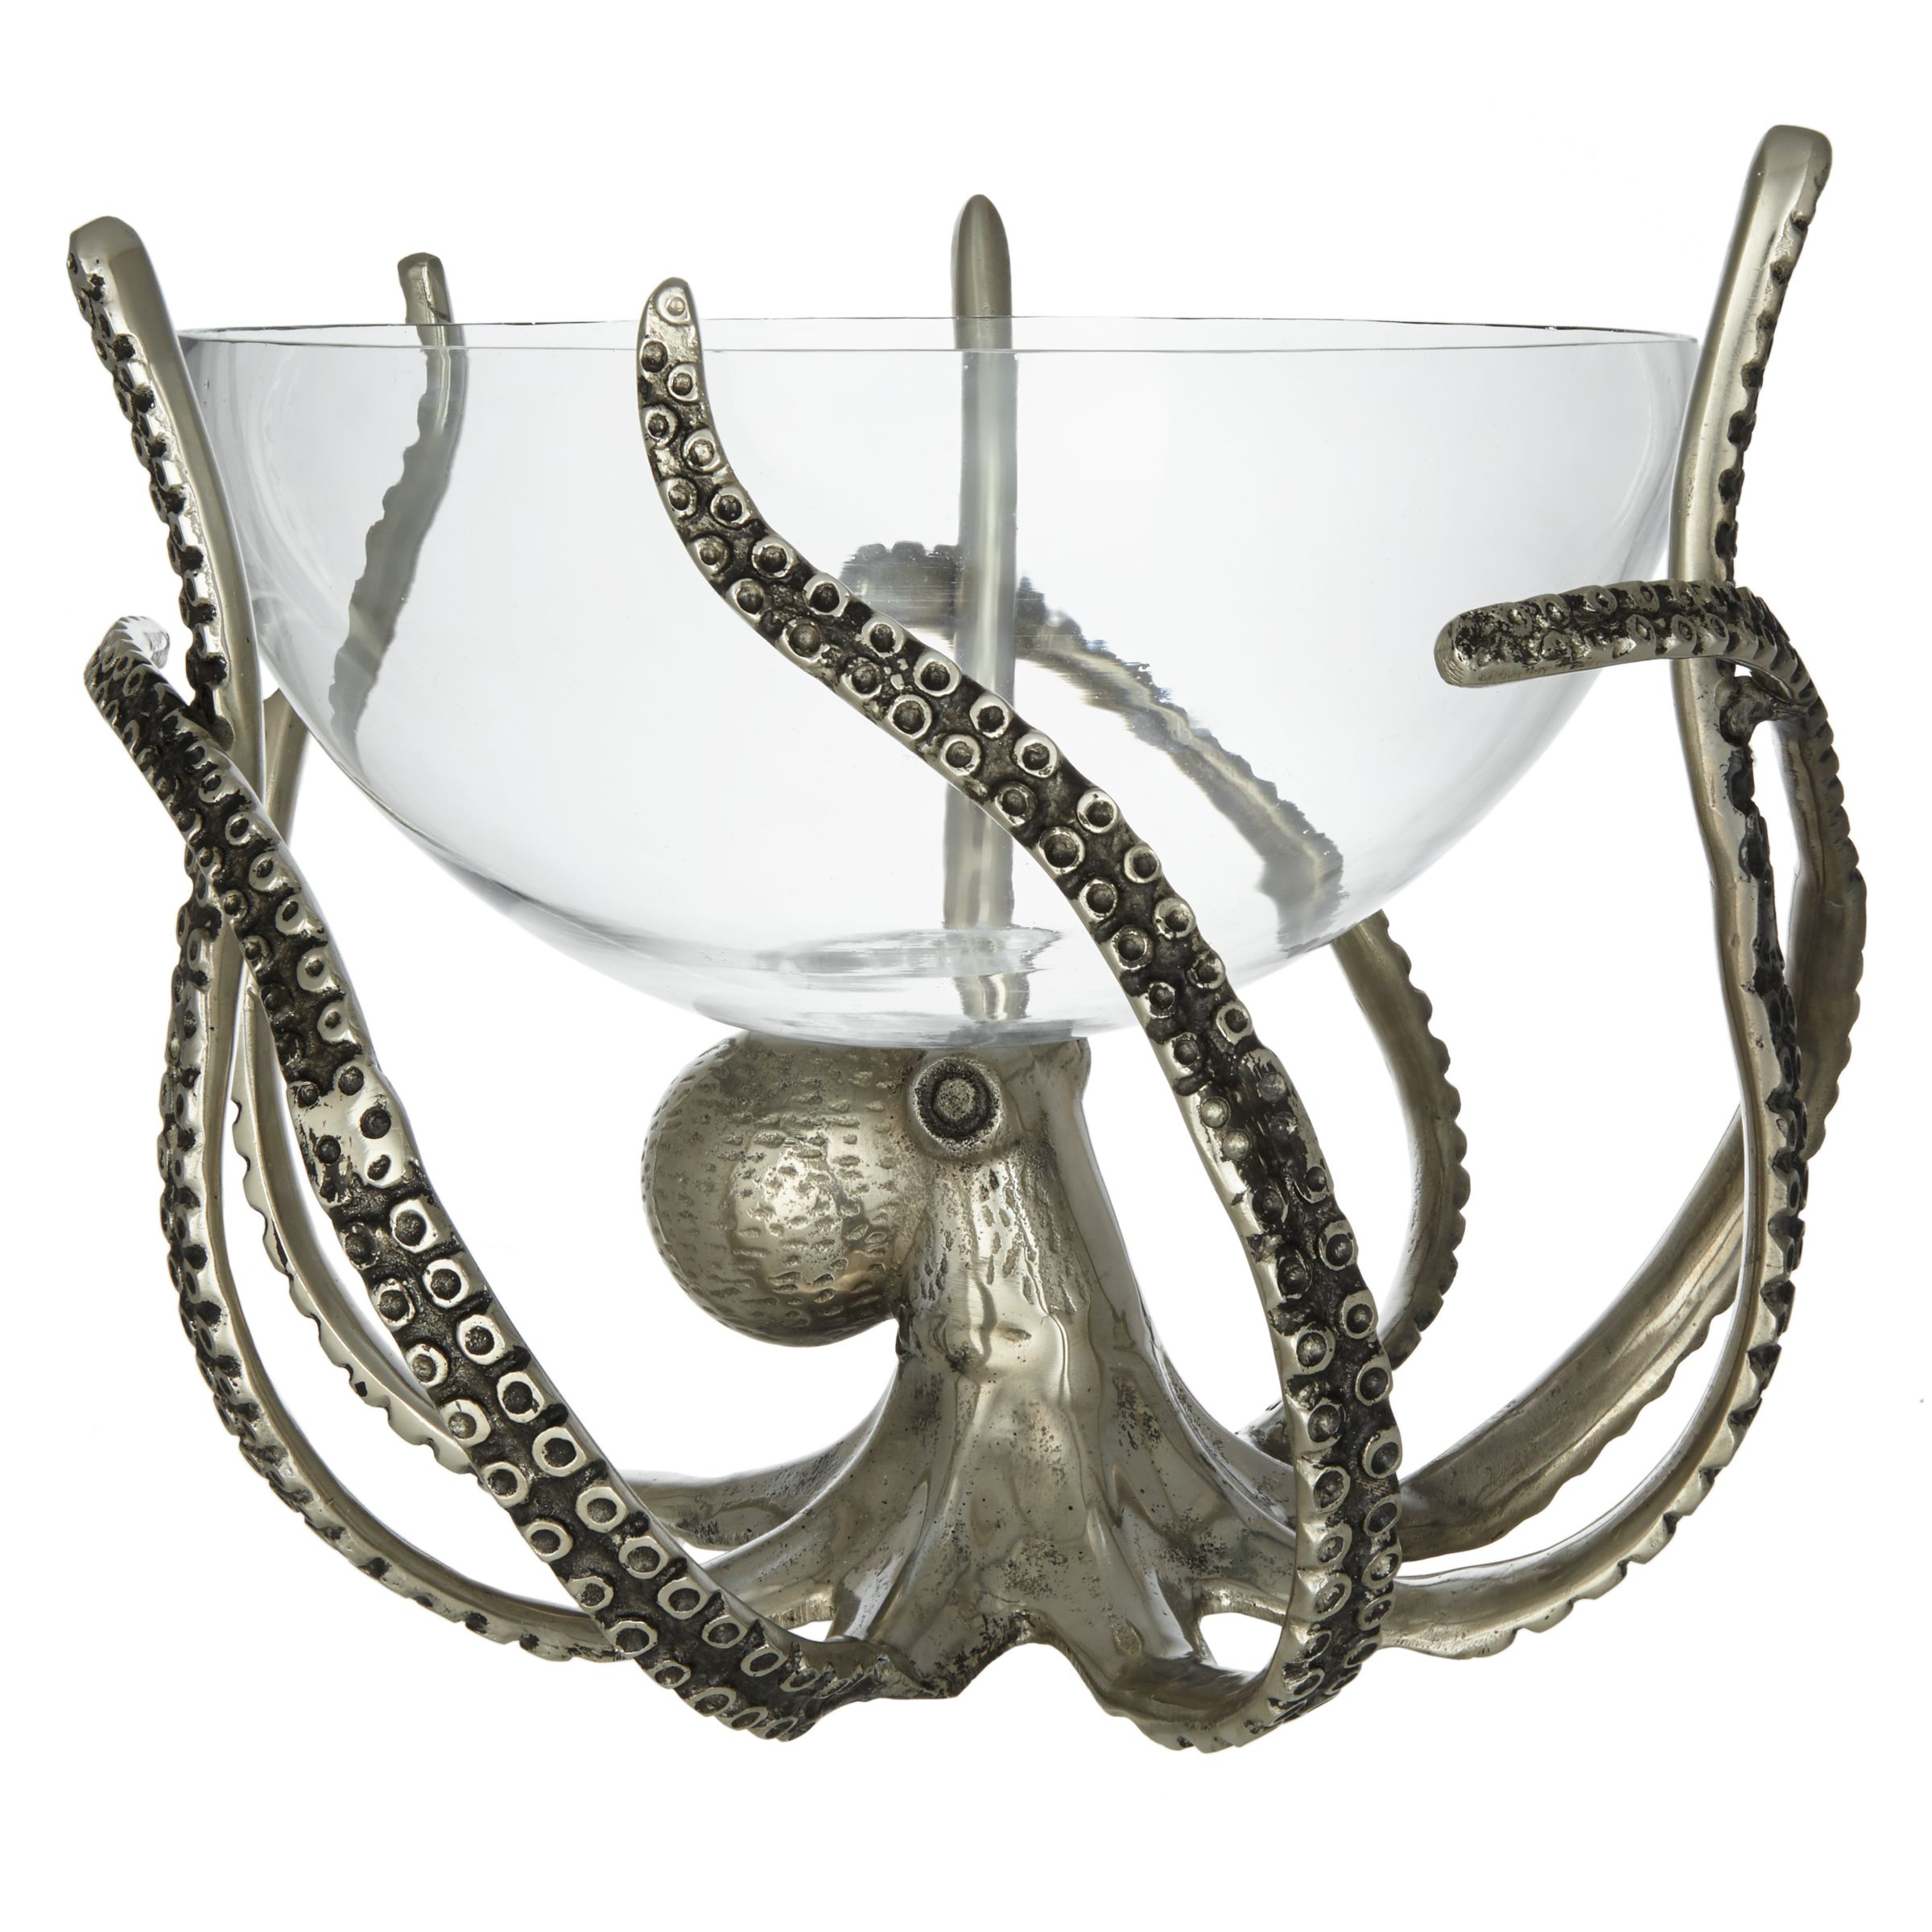 Culinary Concepts Culinary Concepts Octopus Stand and Glass Bowl